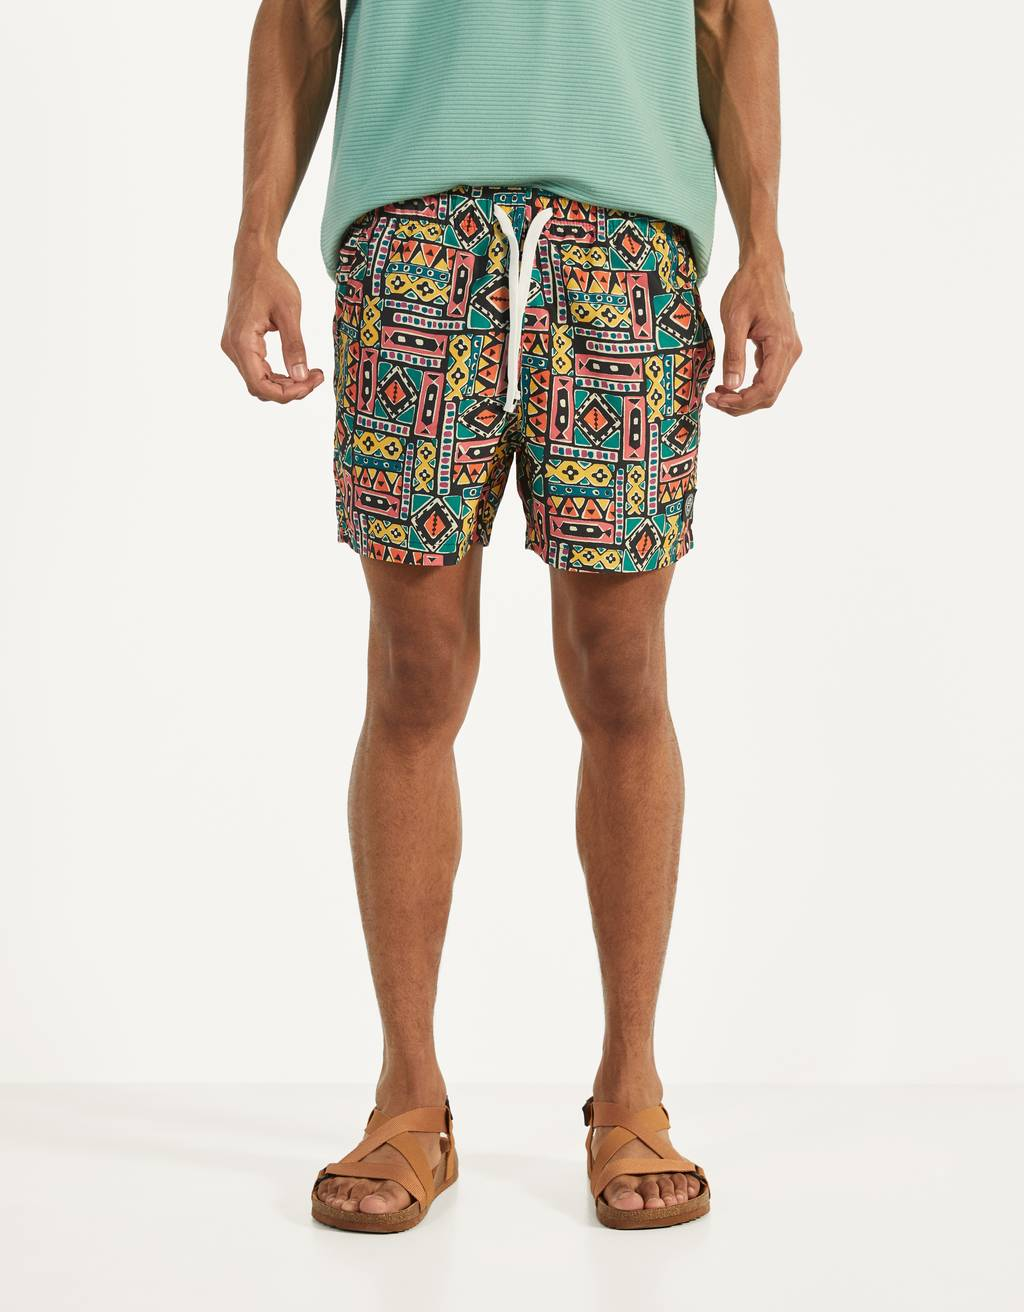 Swimming trunks with a geometric print